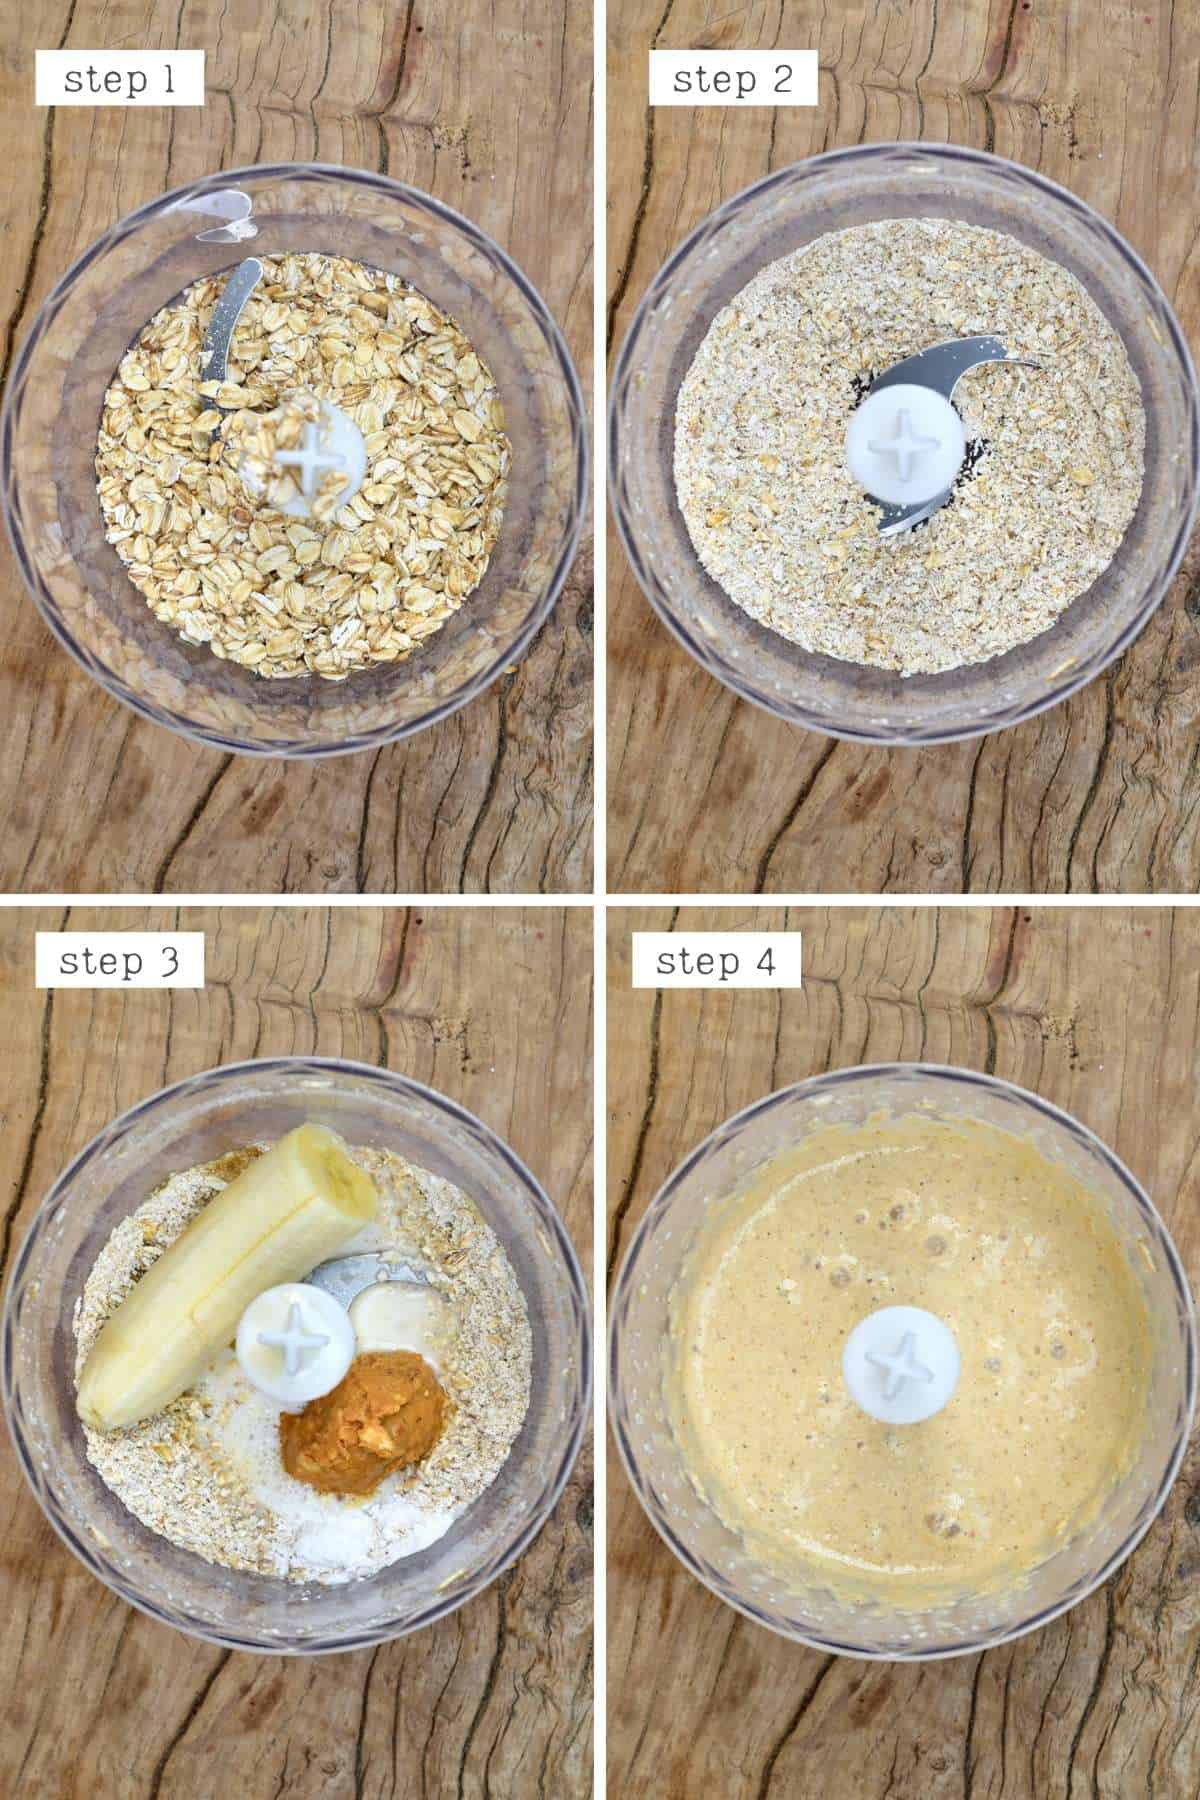 Steps for making peanut butter oats